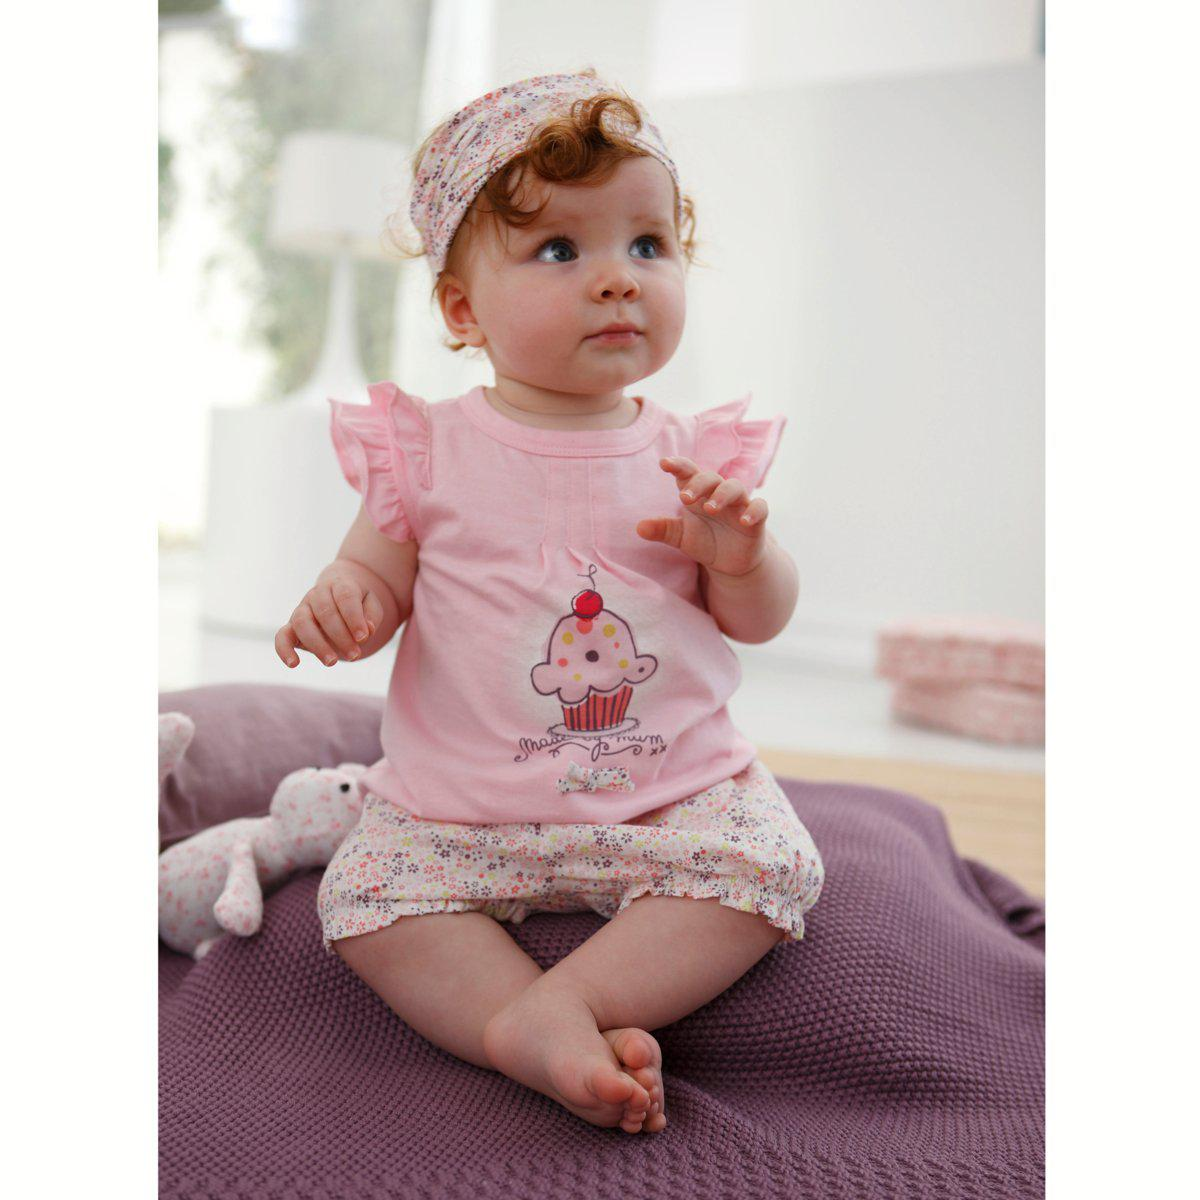 online cheap baby girl suit: floral headband + pink cake shirt +